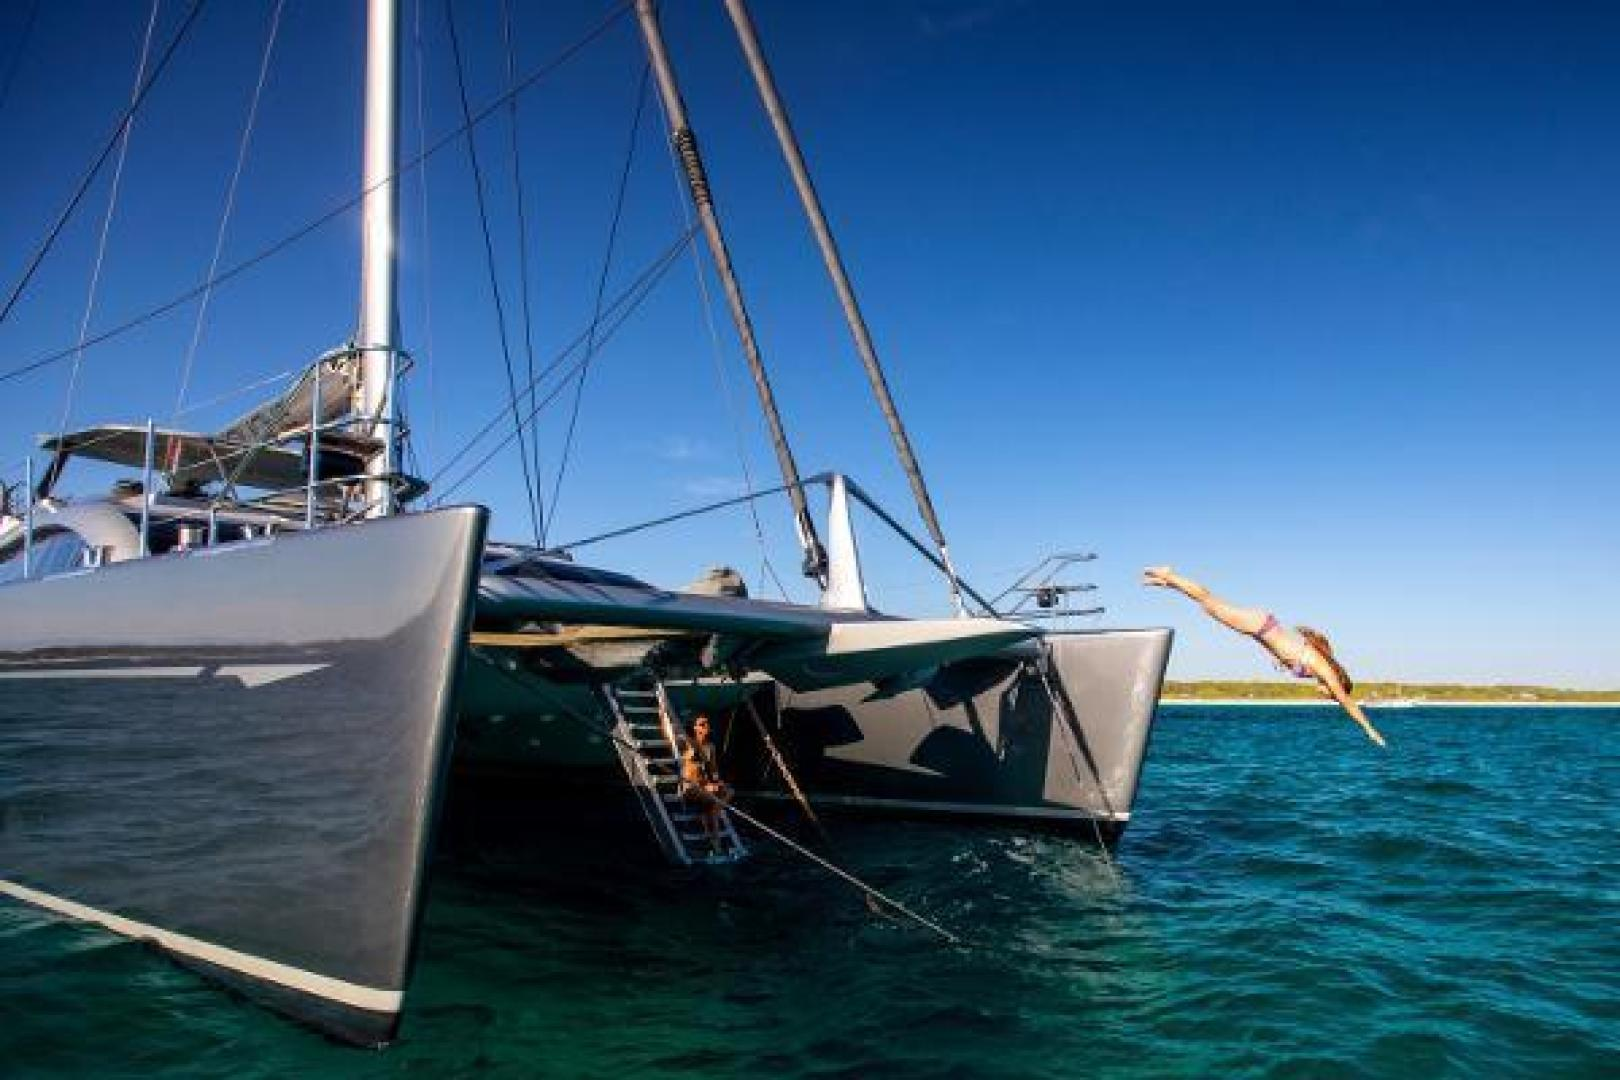 Catamaran-Blue Coast Yachts  2011-CARTOUCHE Antigua & Barbuda-1296532 | Thumbnail